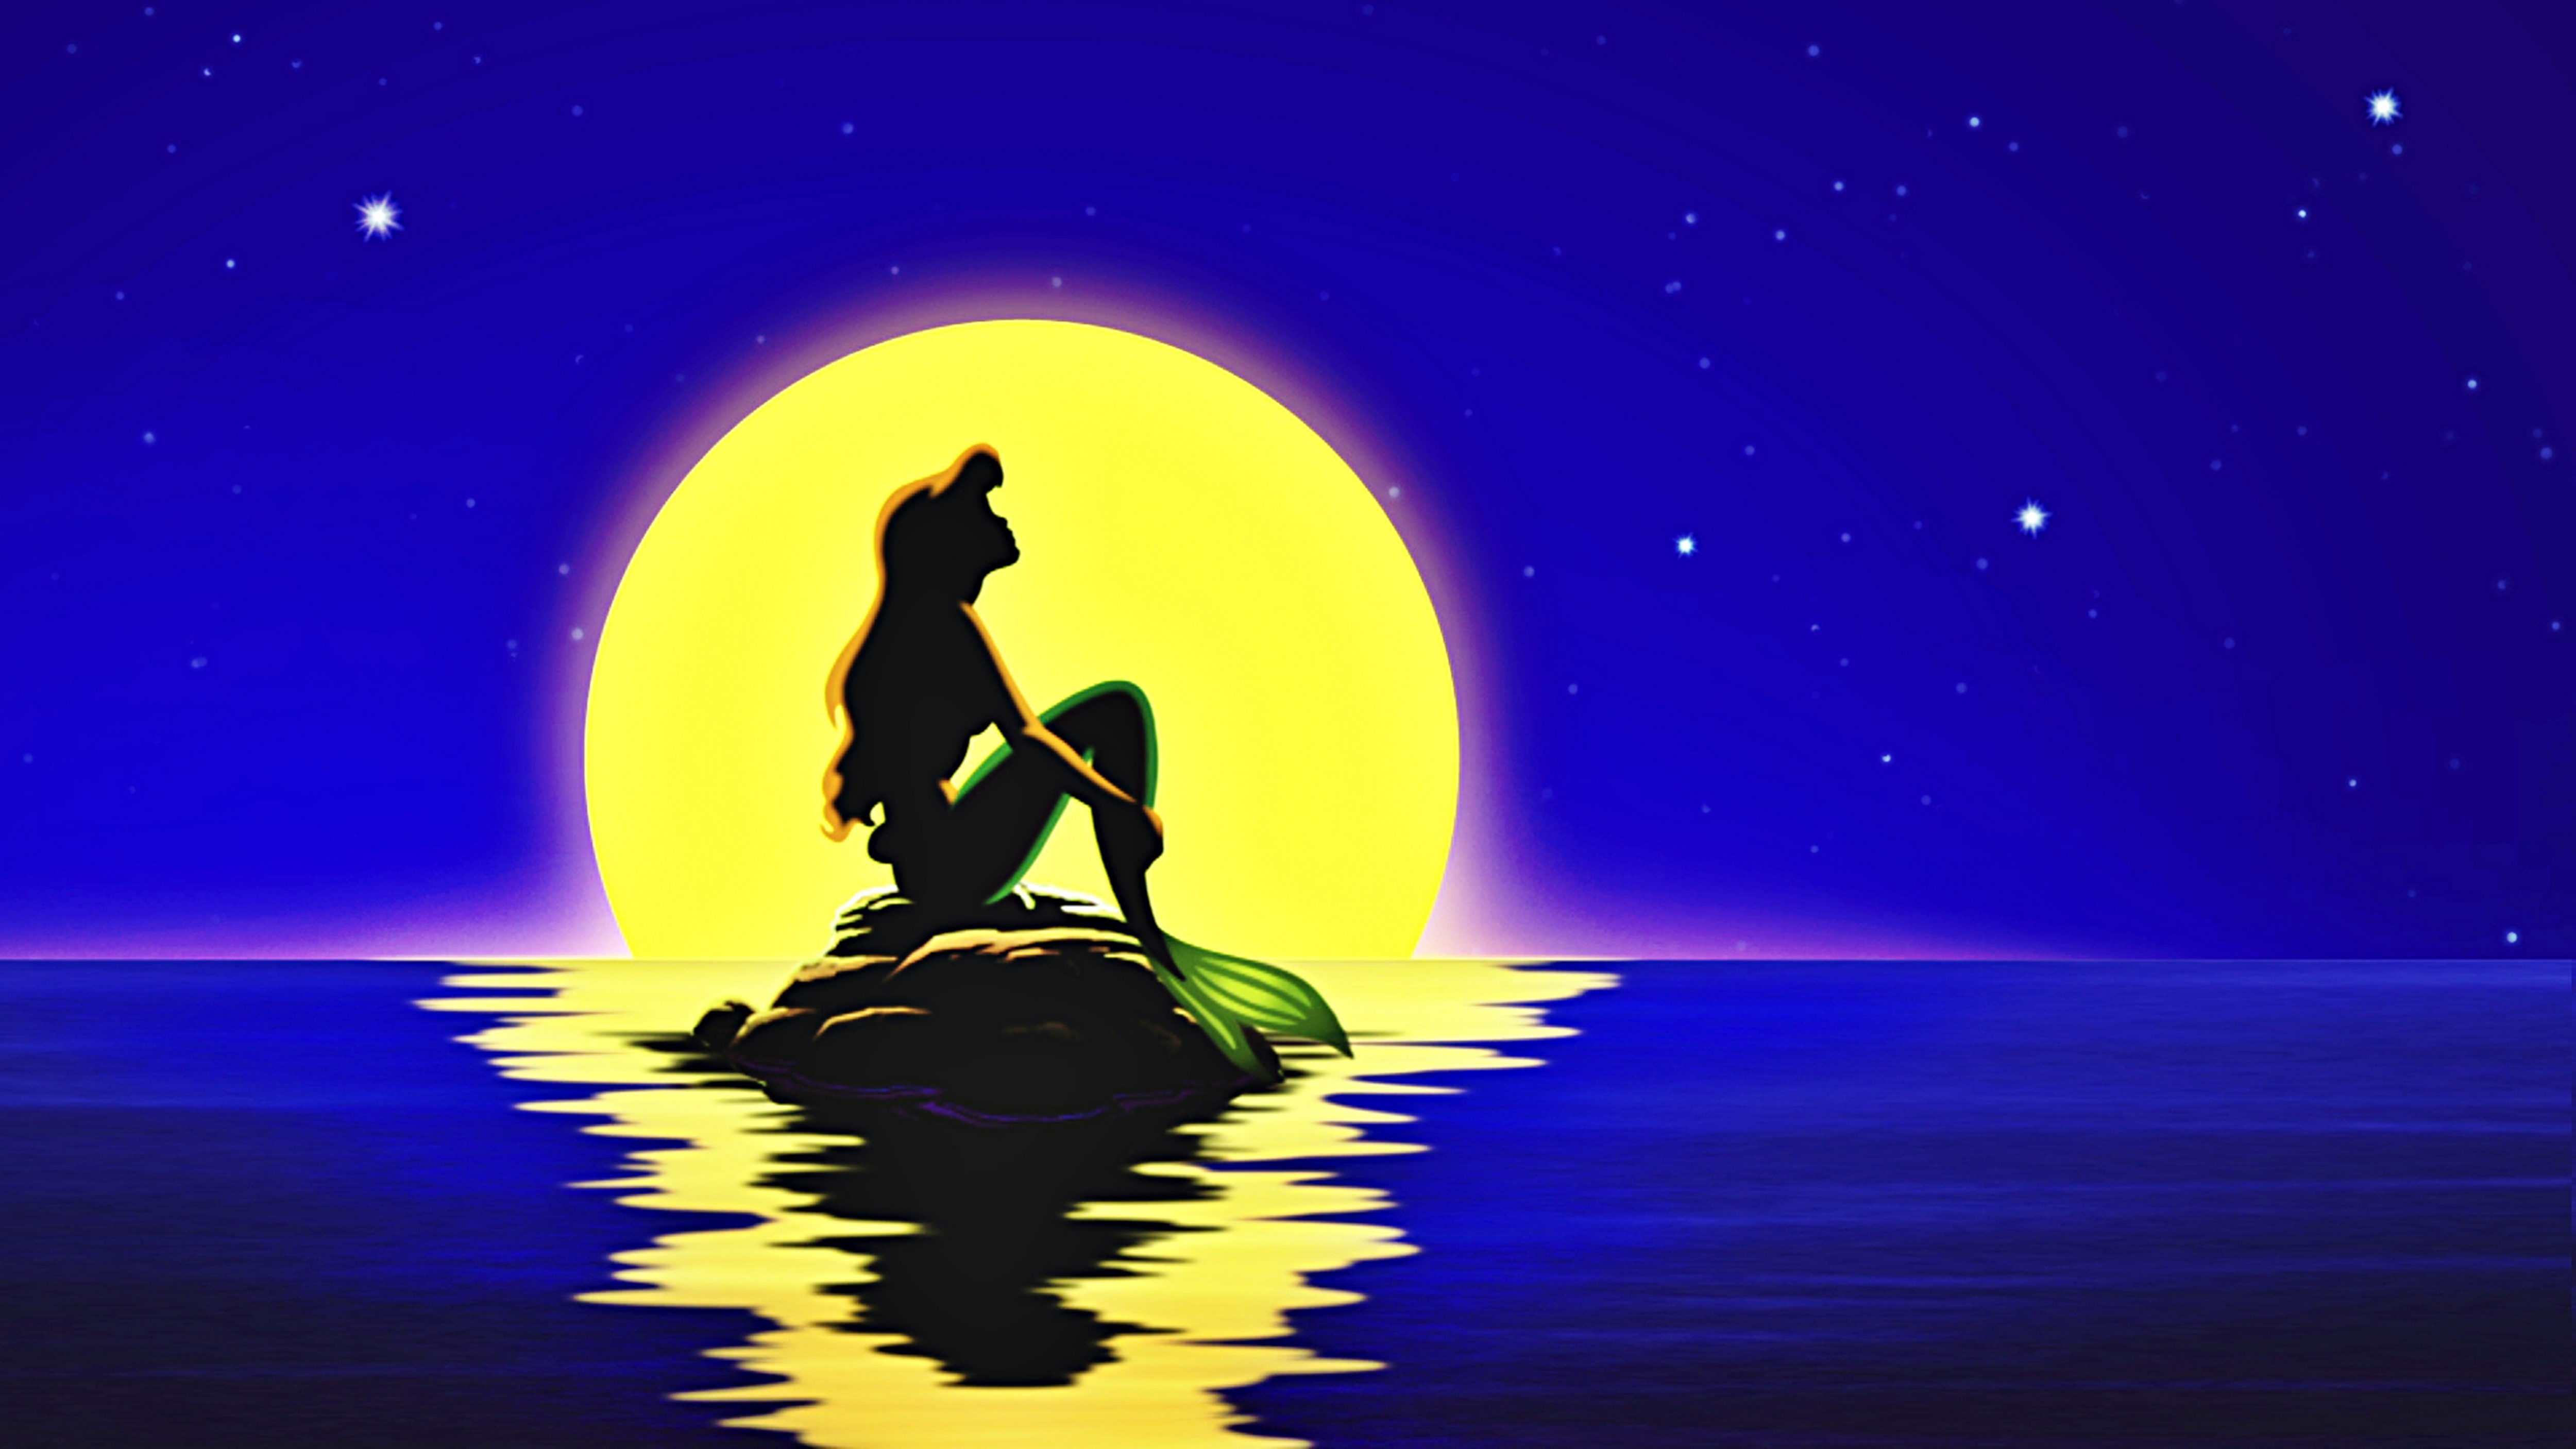 Walt Disney Wallpapers   The Little Mermaid   Walt Disney Characters 5000x2813